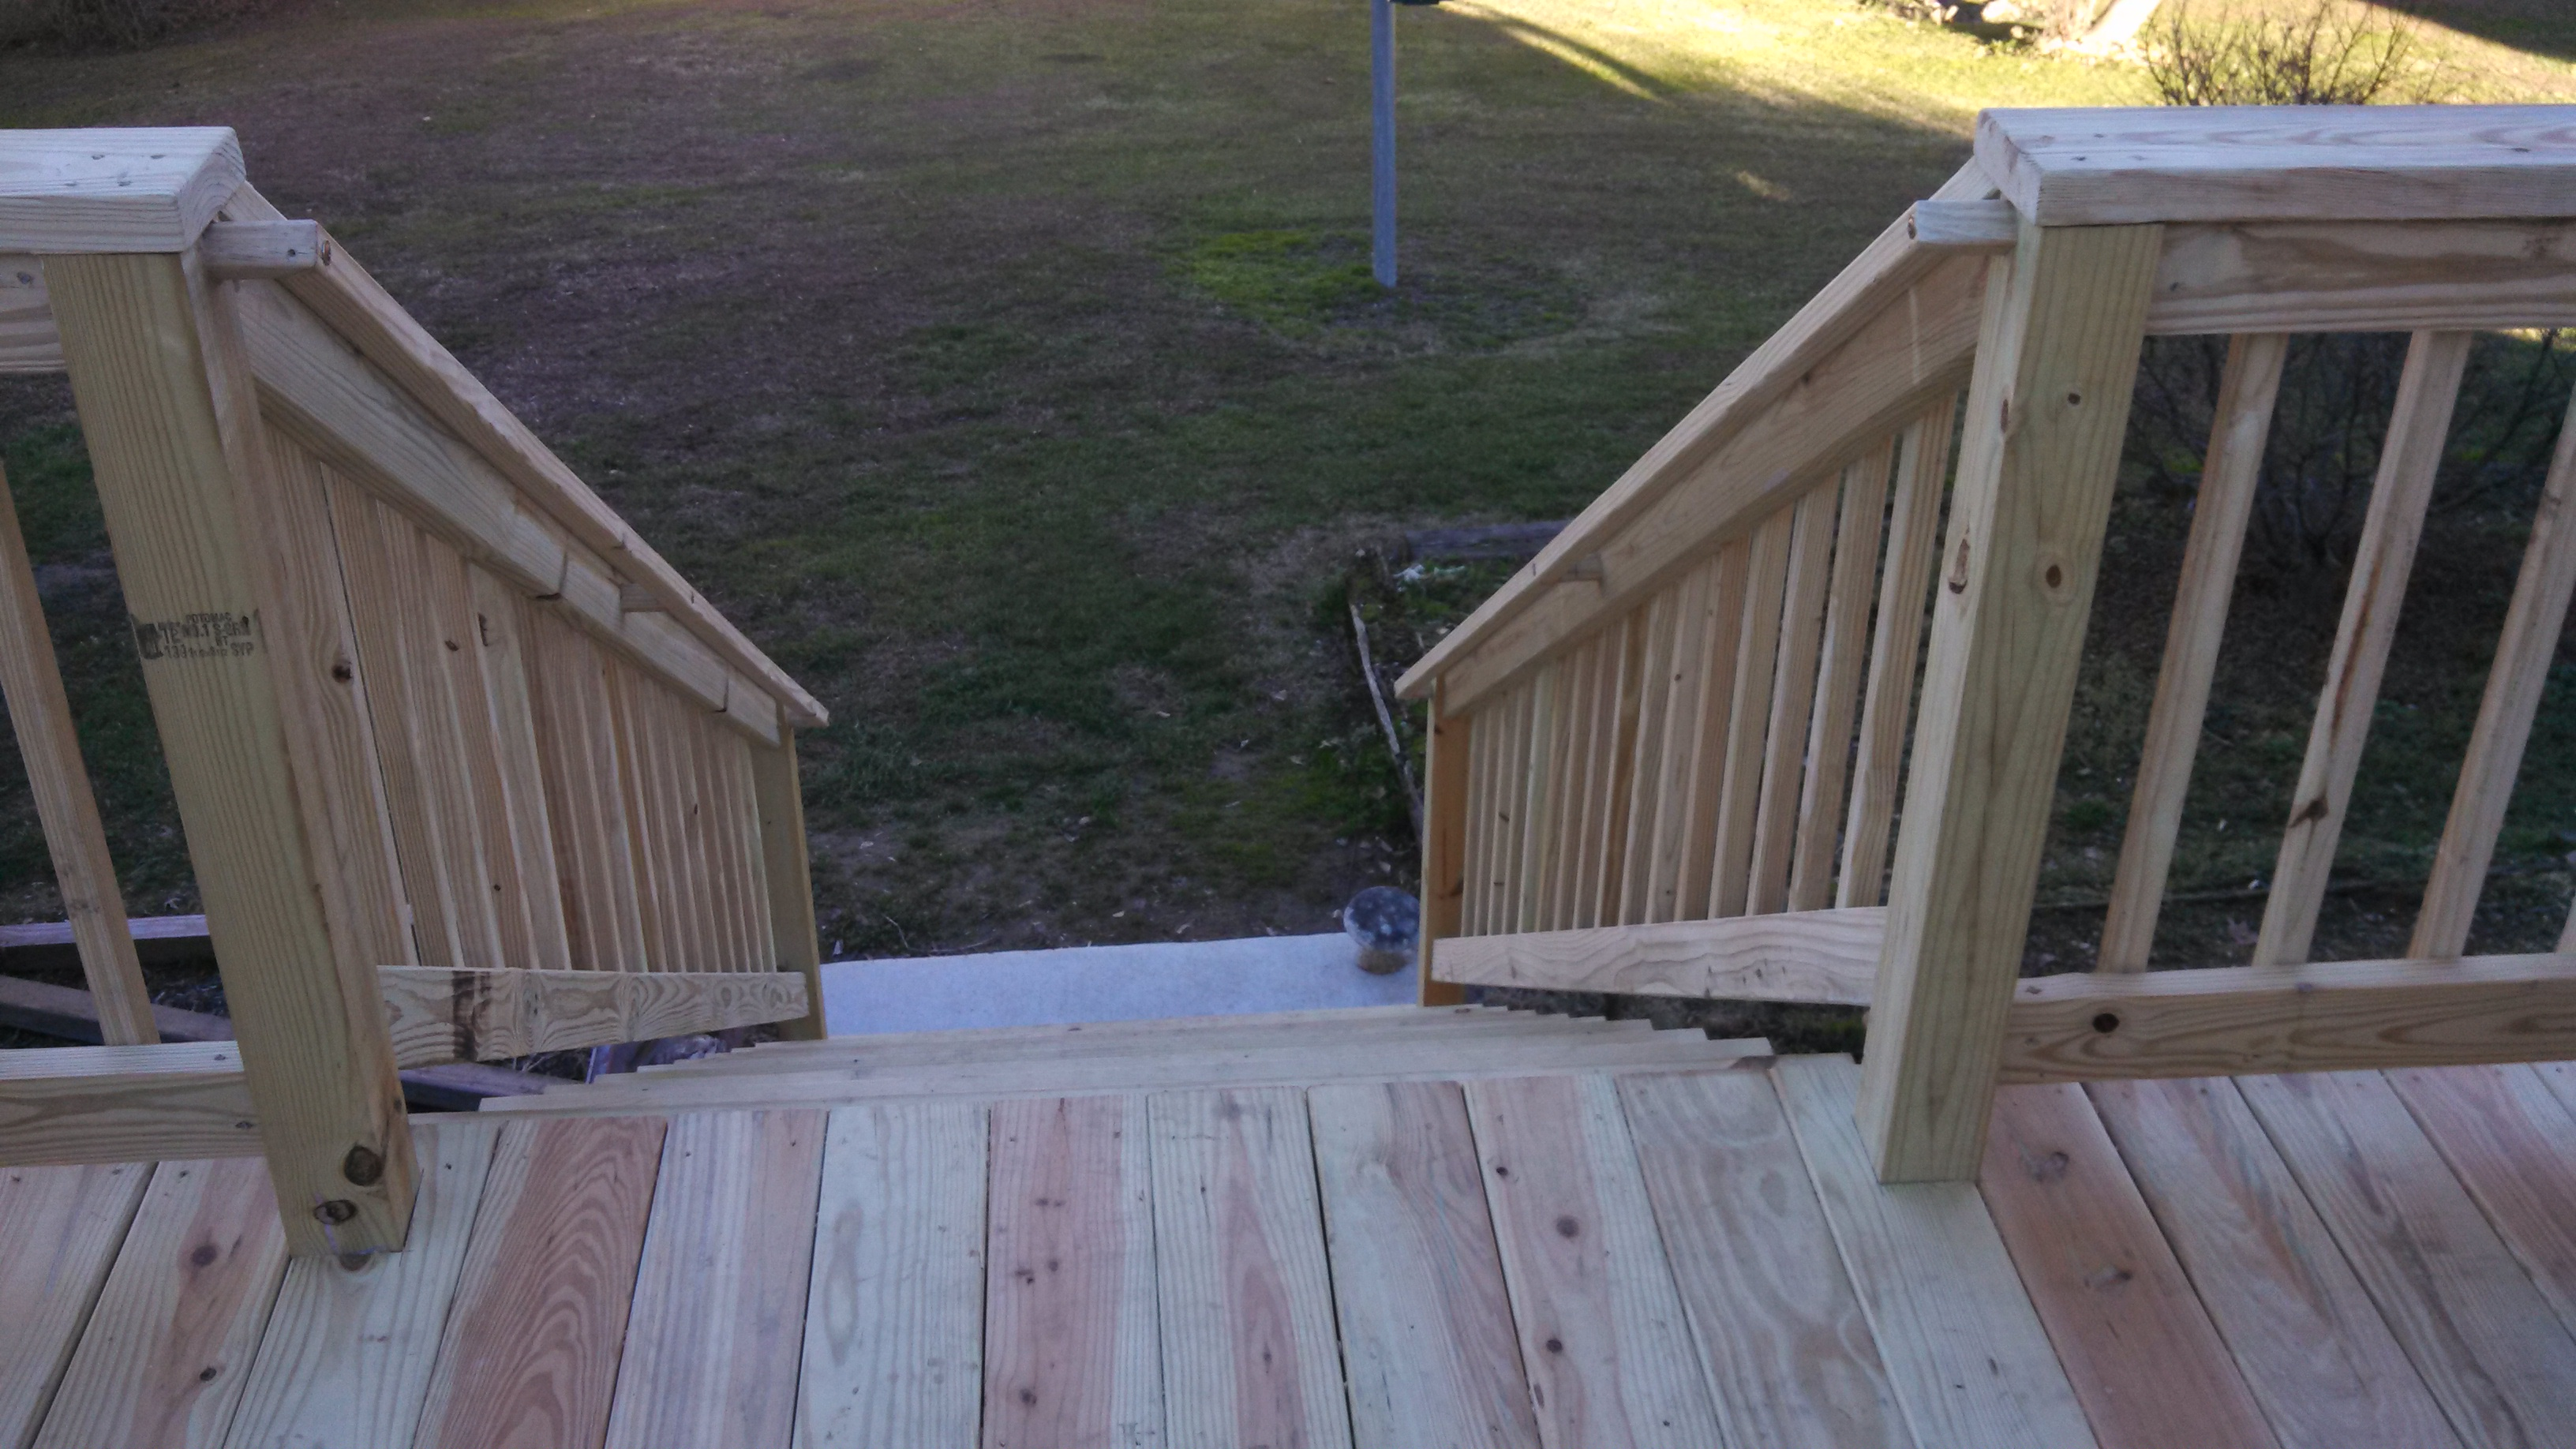 Nice wide stairs with graspable hand